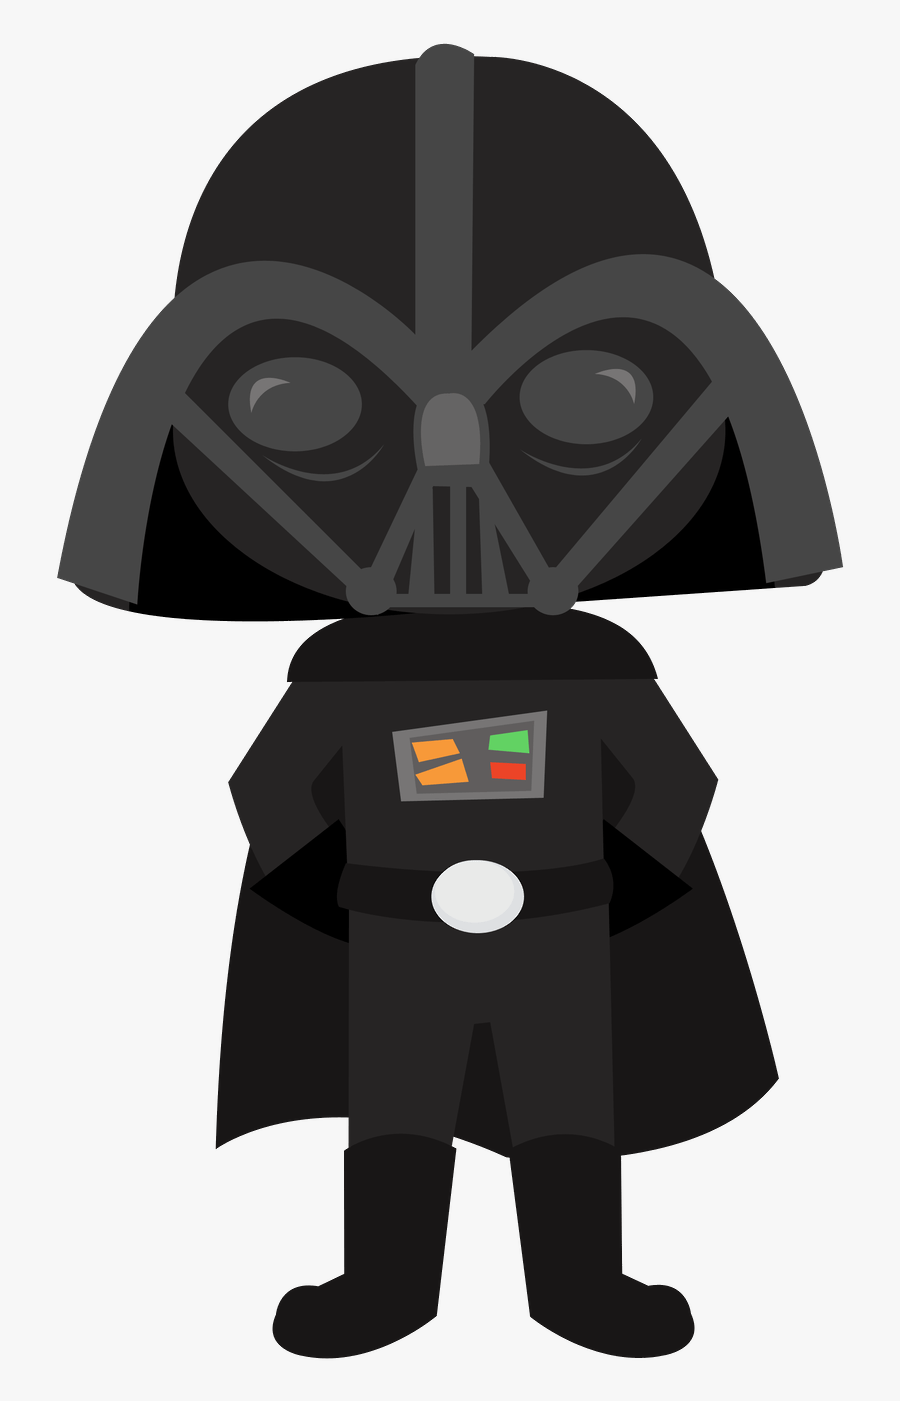 Star Ears Darth Vader Star Wars Clipart - Star Wars Clipart Png, Transparent Clipart